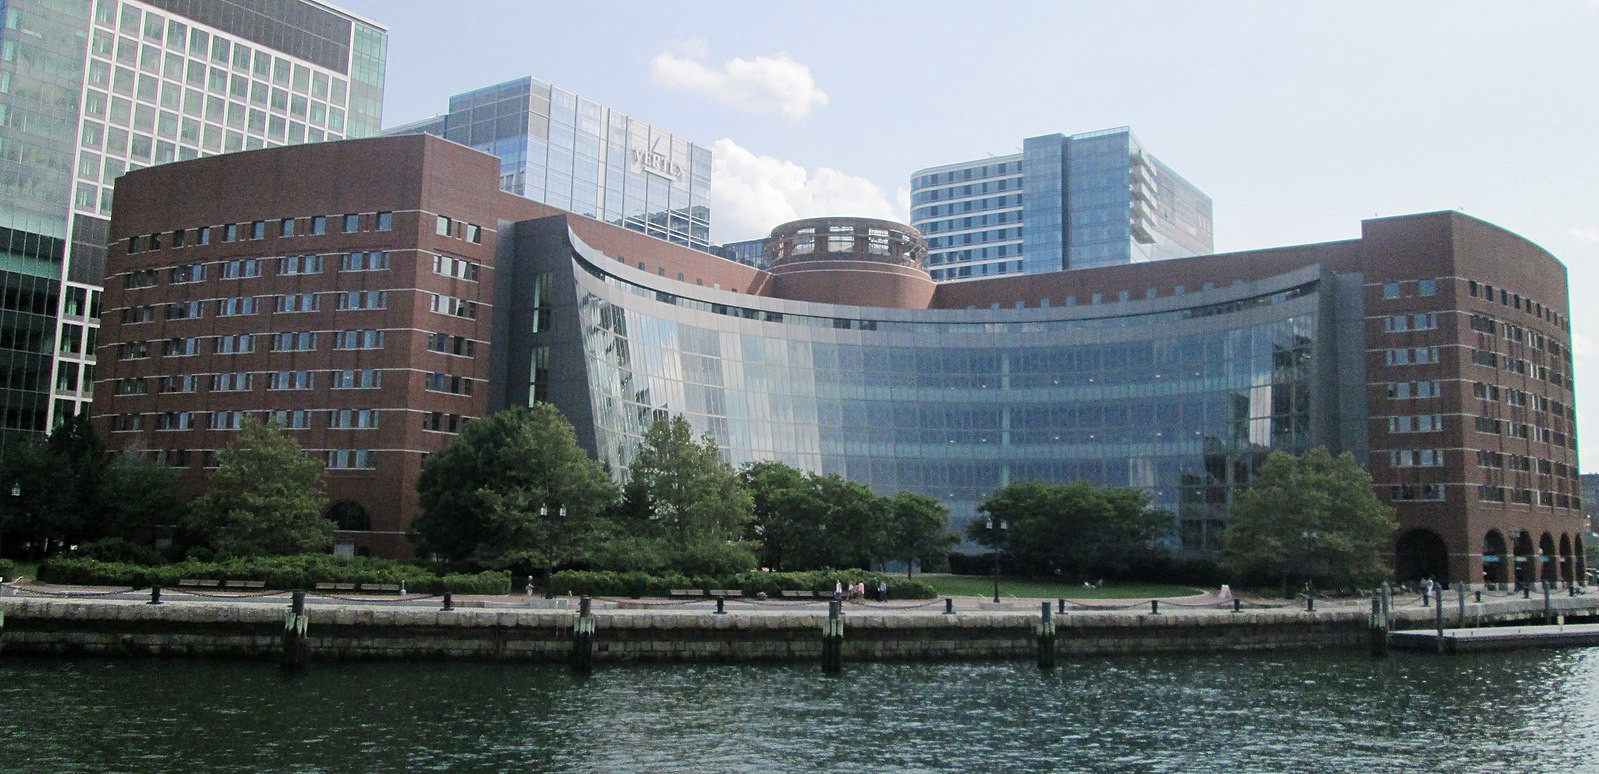 The Moakley Courthouse